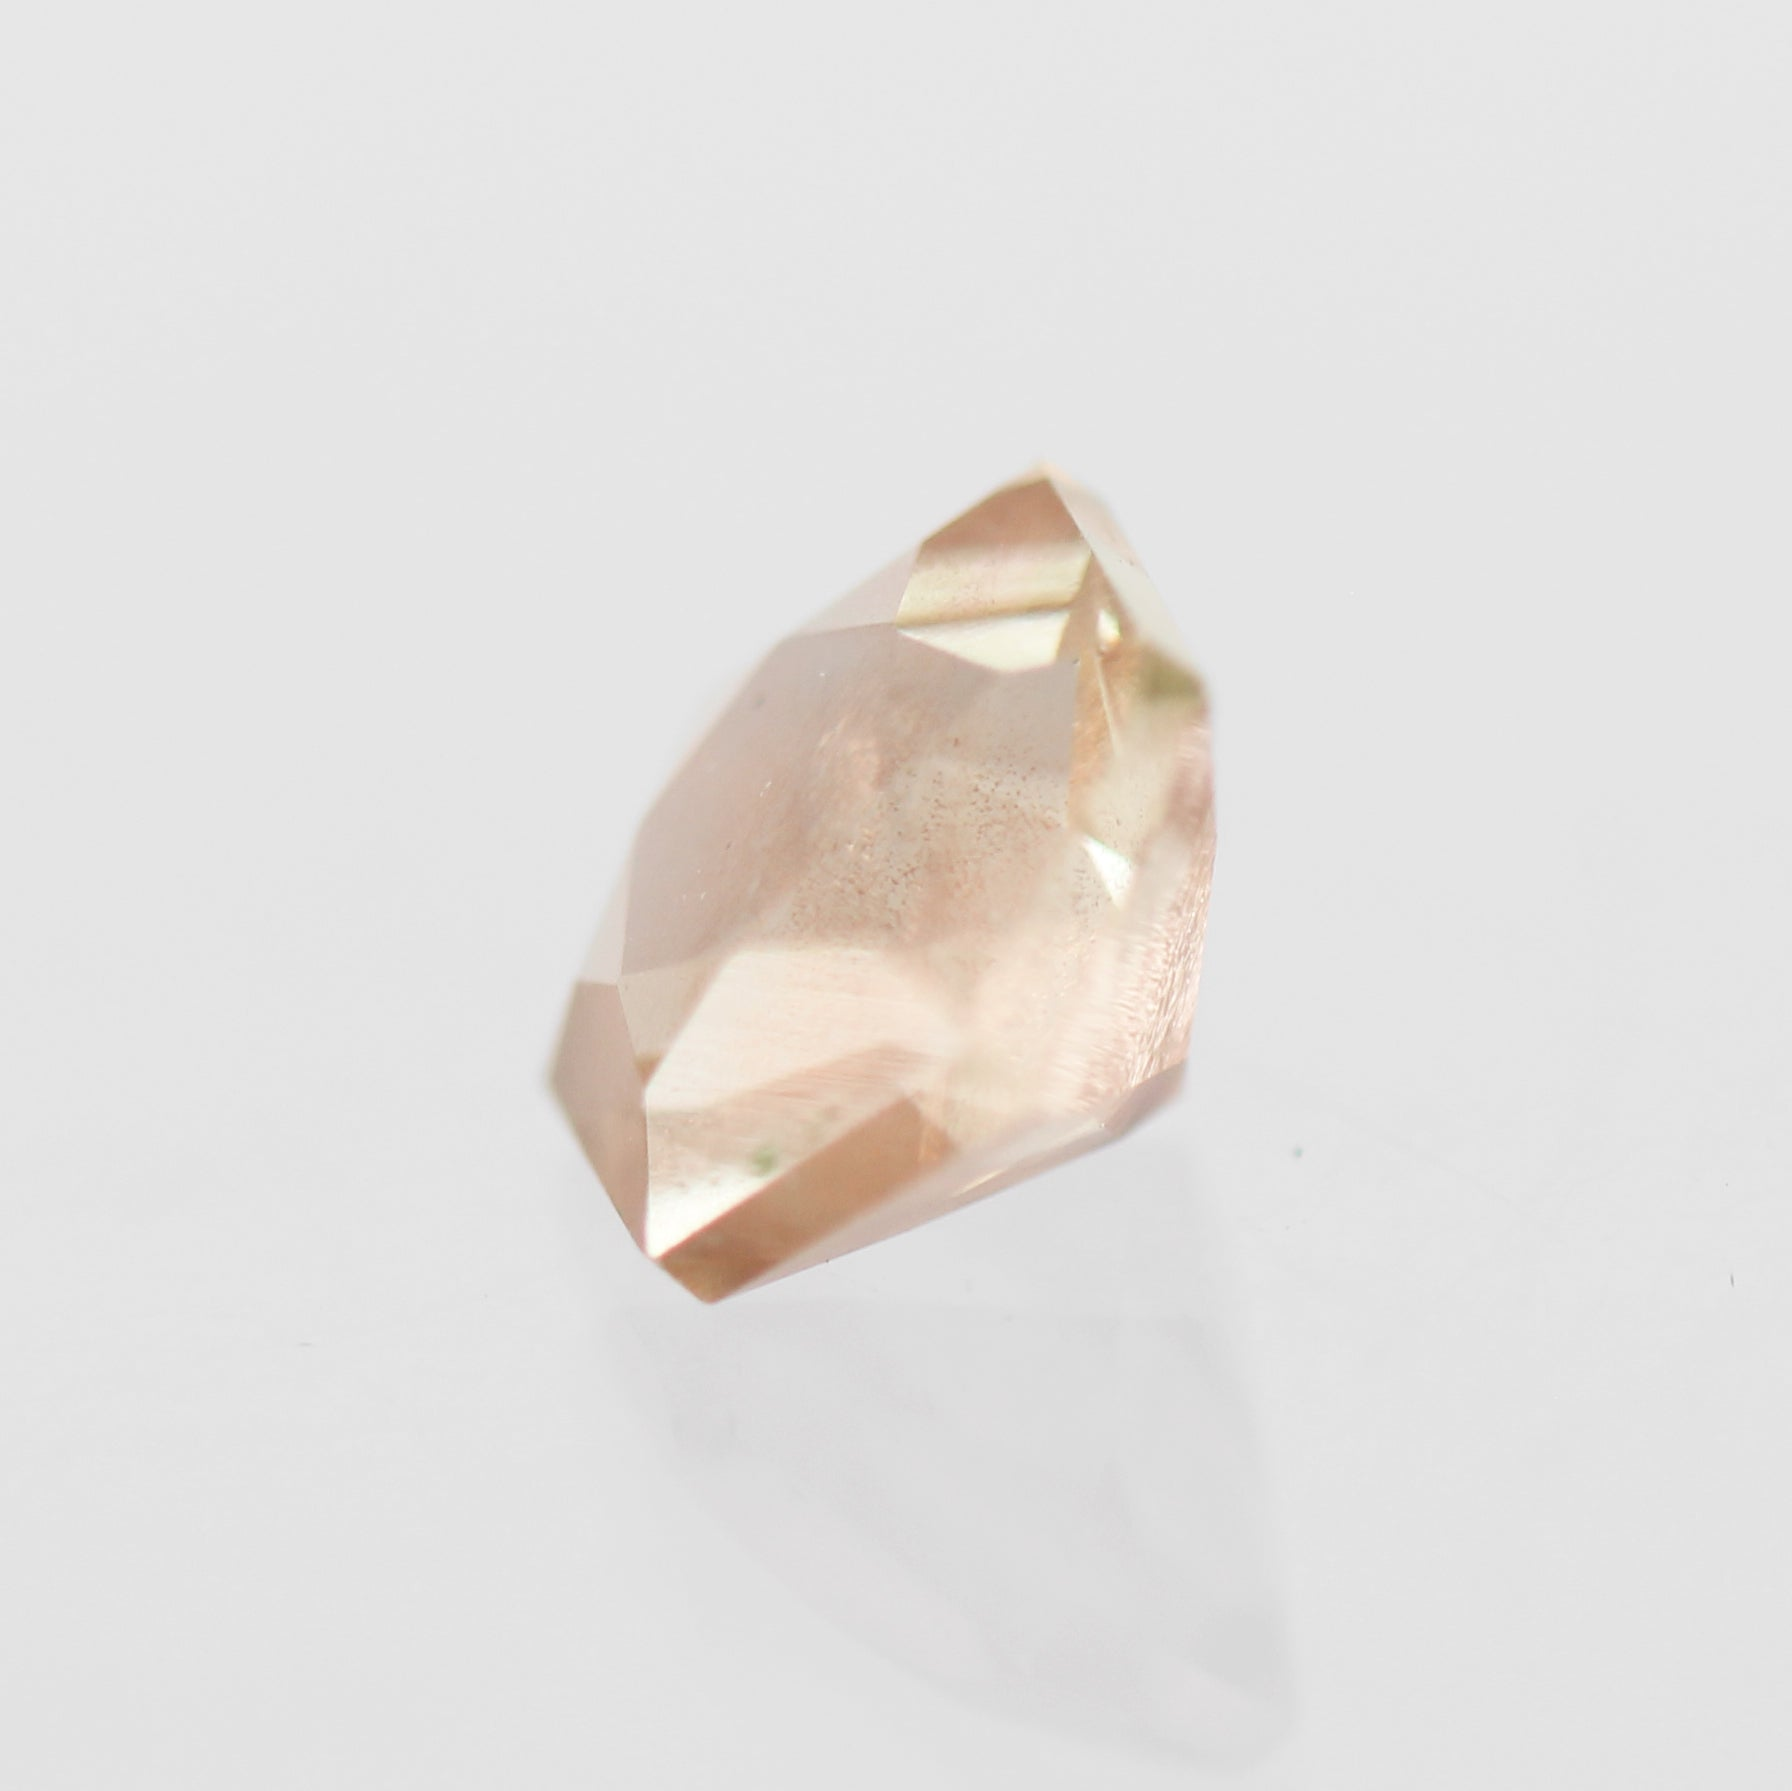 2.03 Carat Hexagon Sunstone- Inventory Code SUNHX203 - Celestial Diamonds ® by Midwinter Co.